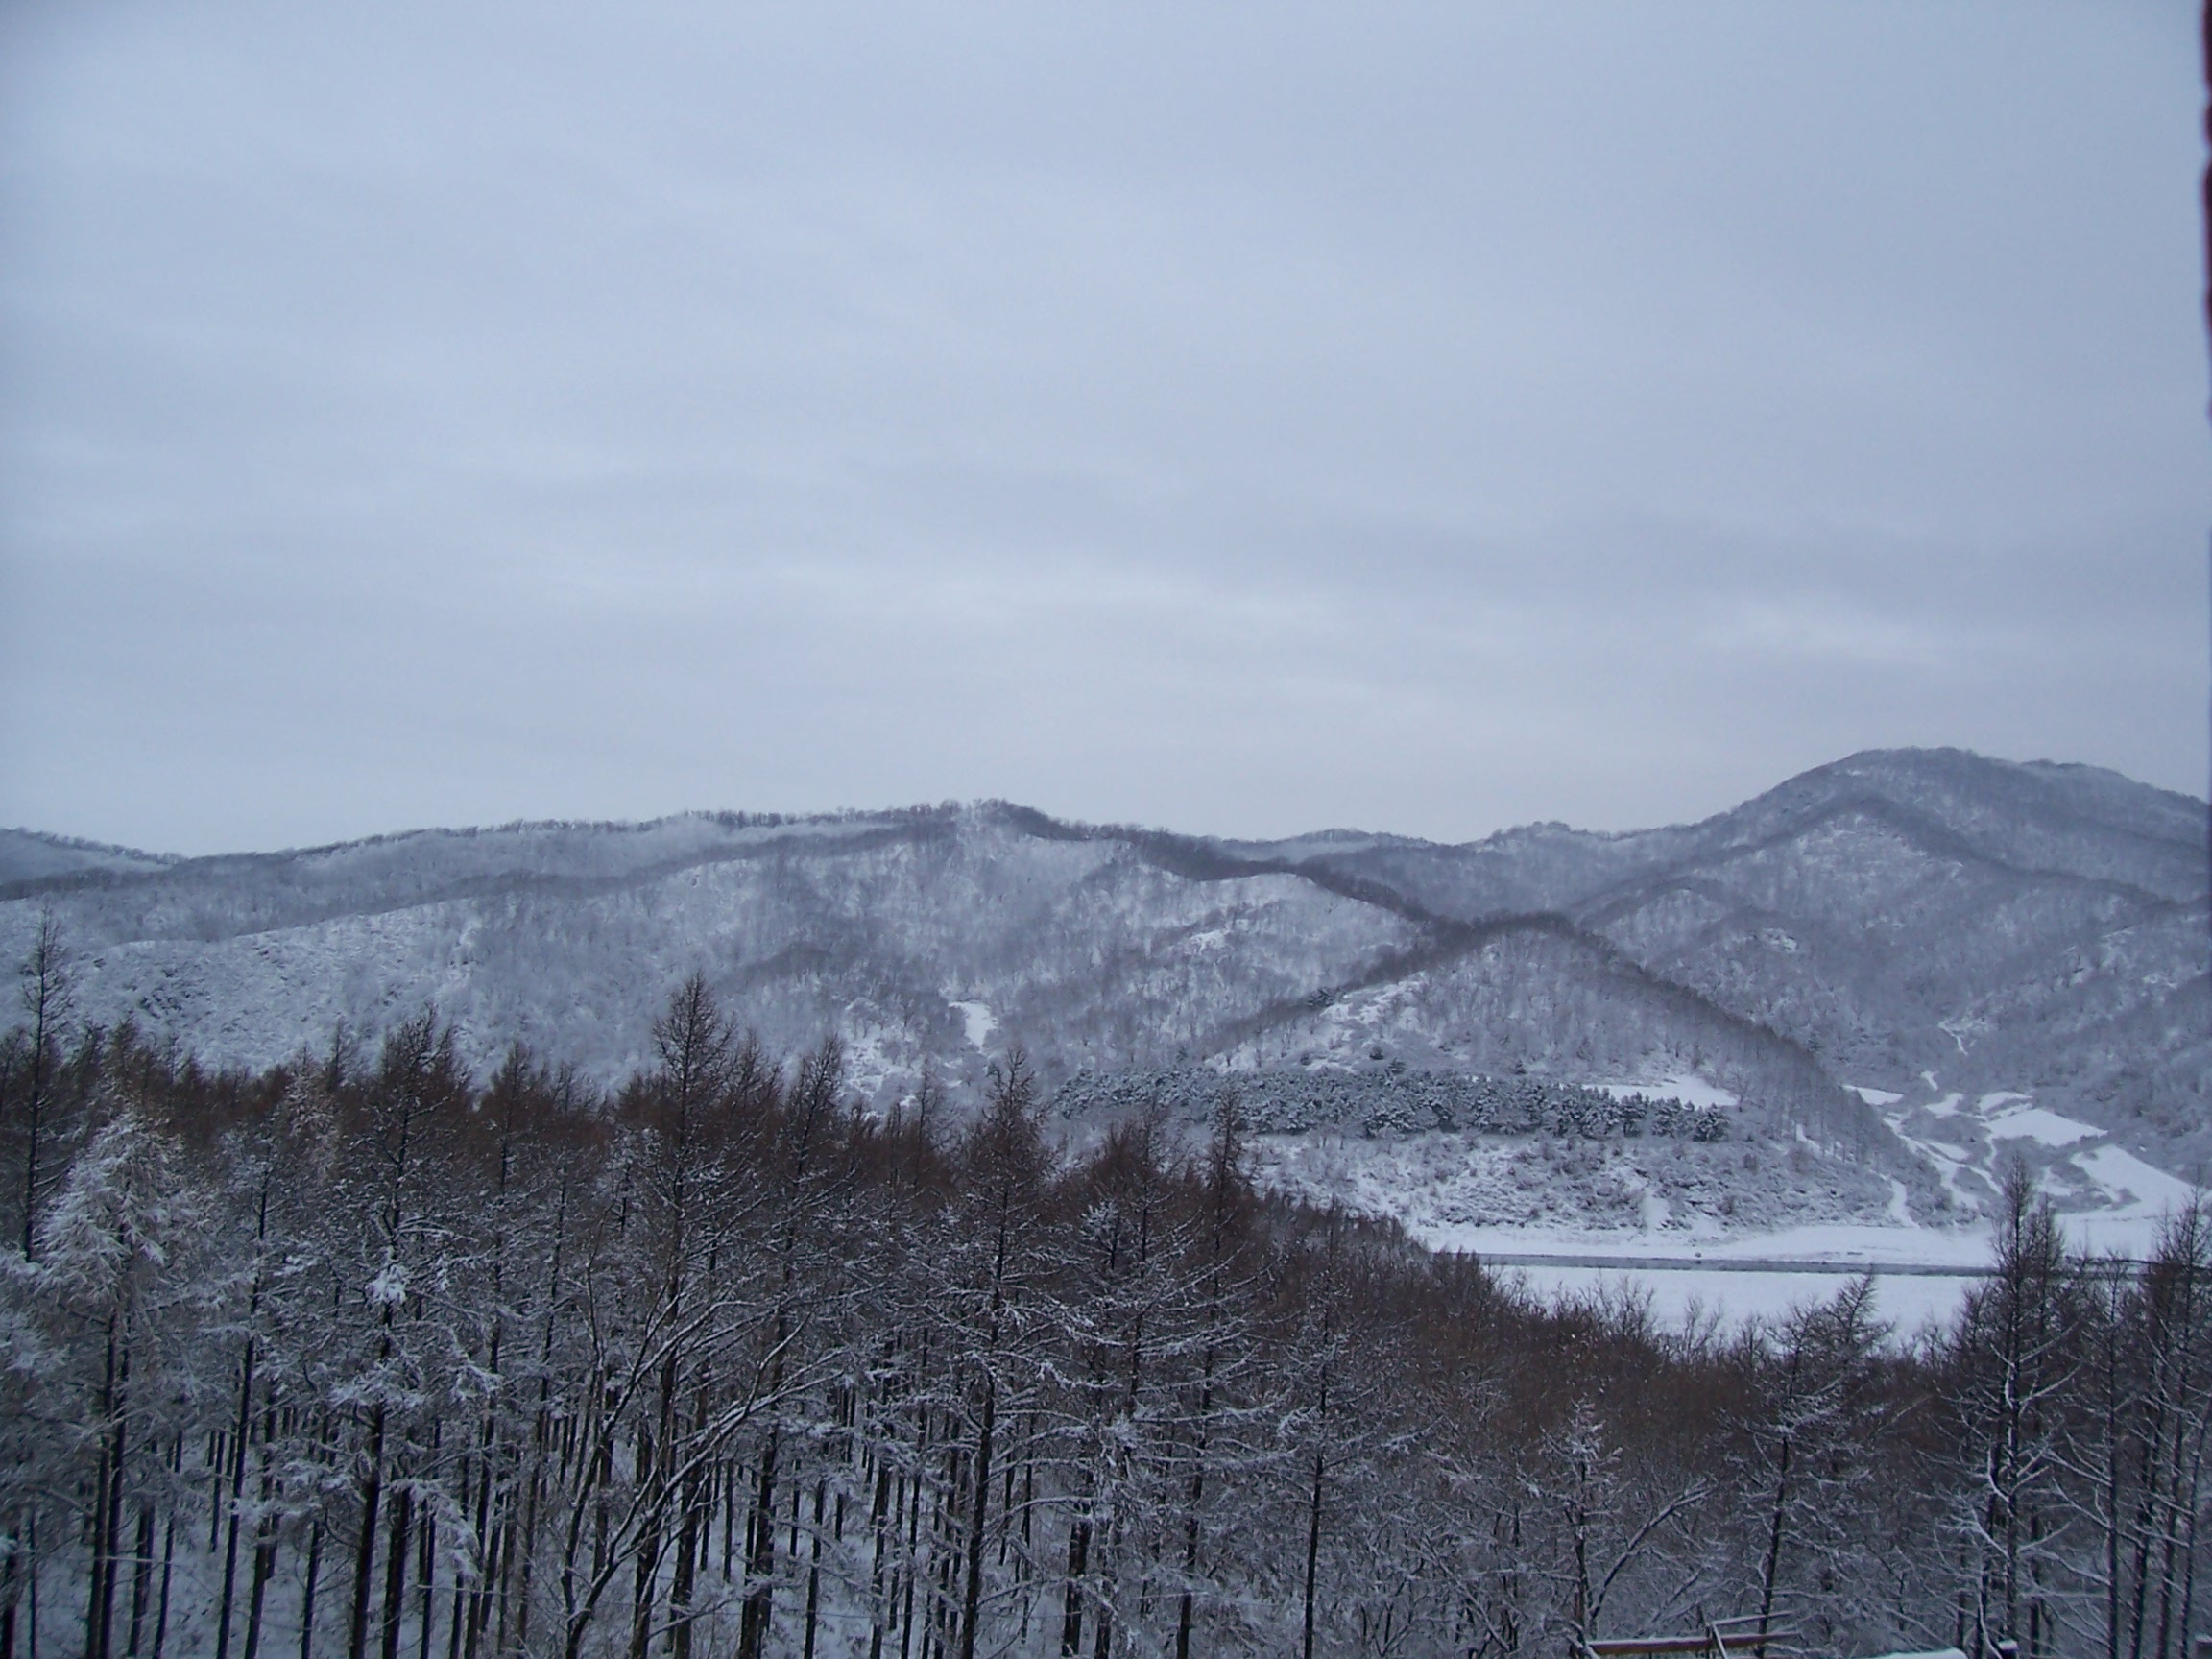 Hills near the school in winter